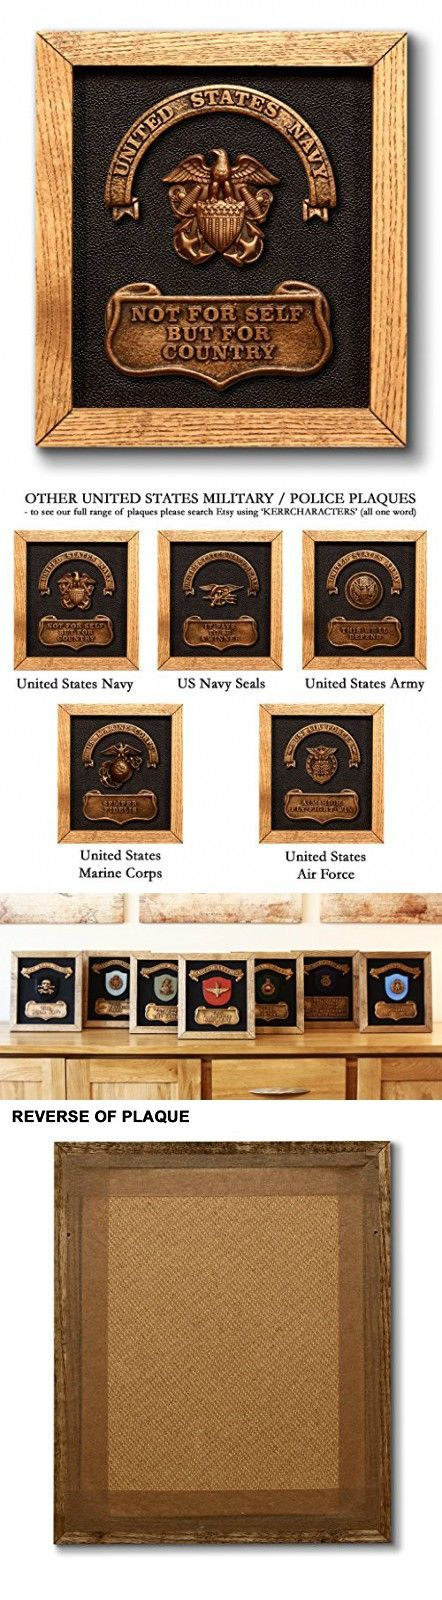 US NAVY Plaque - includes official United States Navy badge and motto. Magnificent handmade military present or gift - Birthday / Fathers Day / Christmas etc